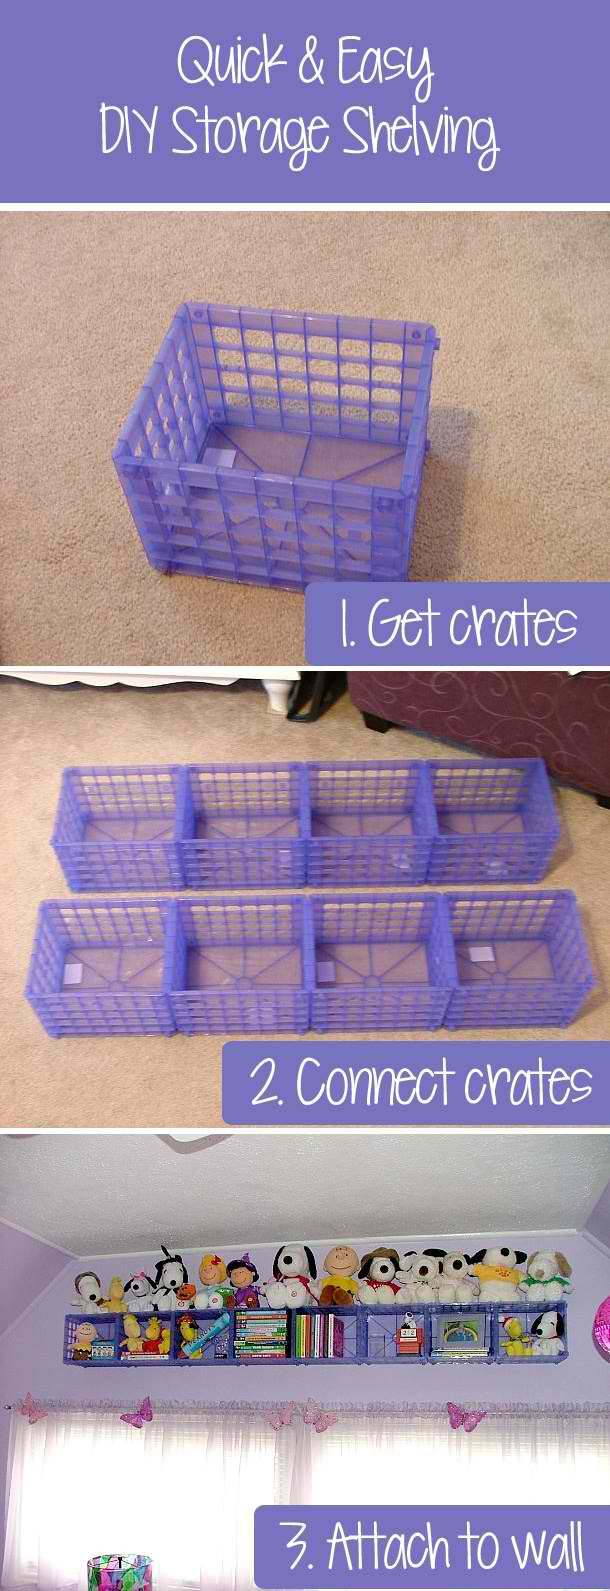 Make a Storage Shelf with plastic Crates!